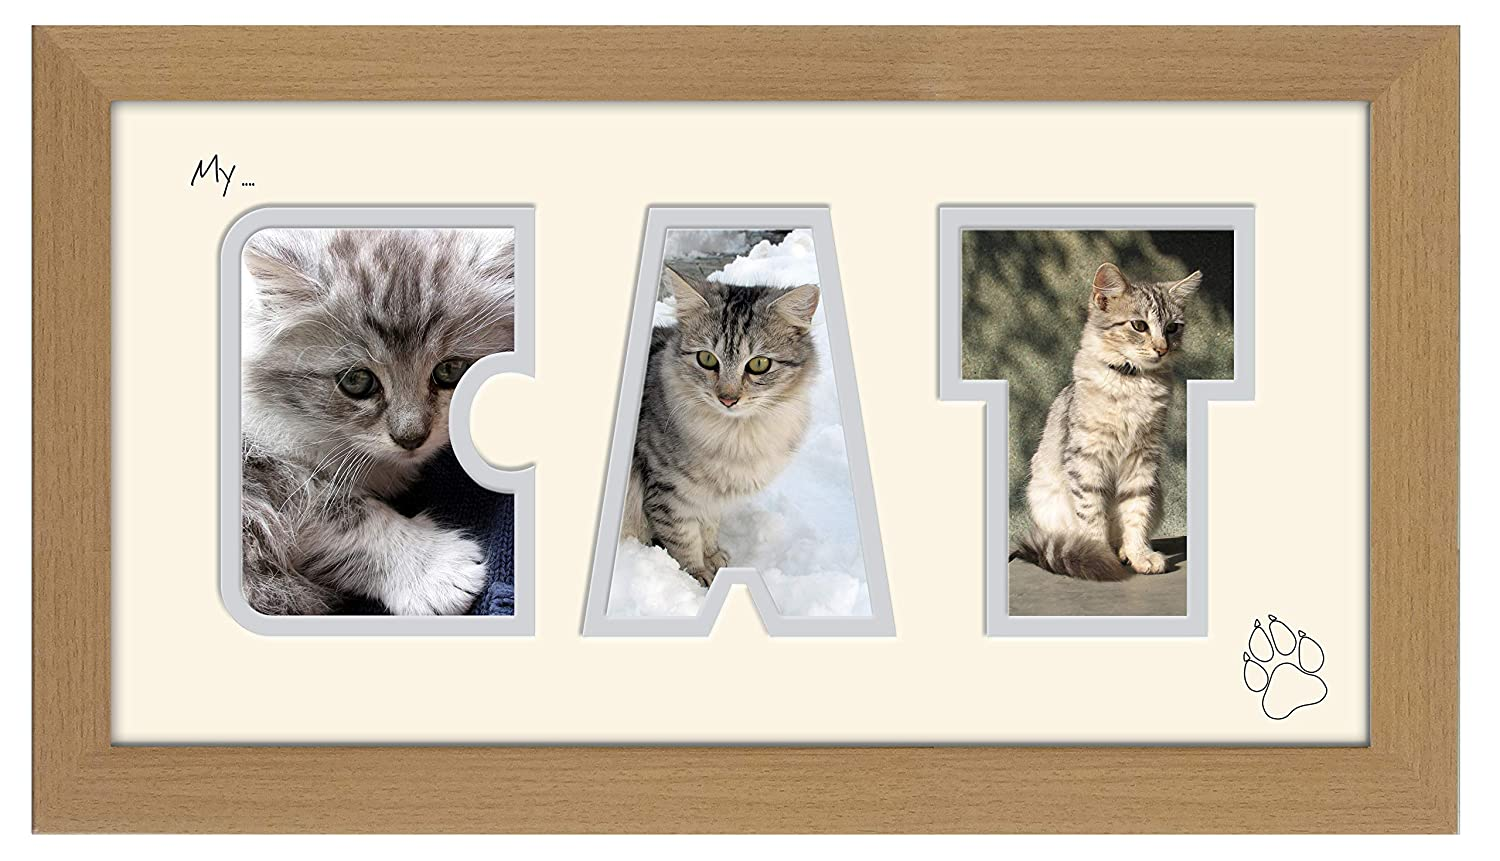 My Cat Photo Frame Word Frame Light Oak Wood Finish Birthday Picture Gift Present Photos in a Word